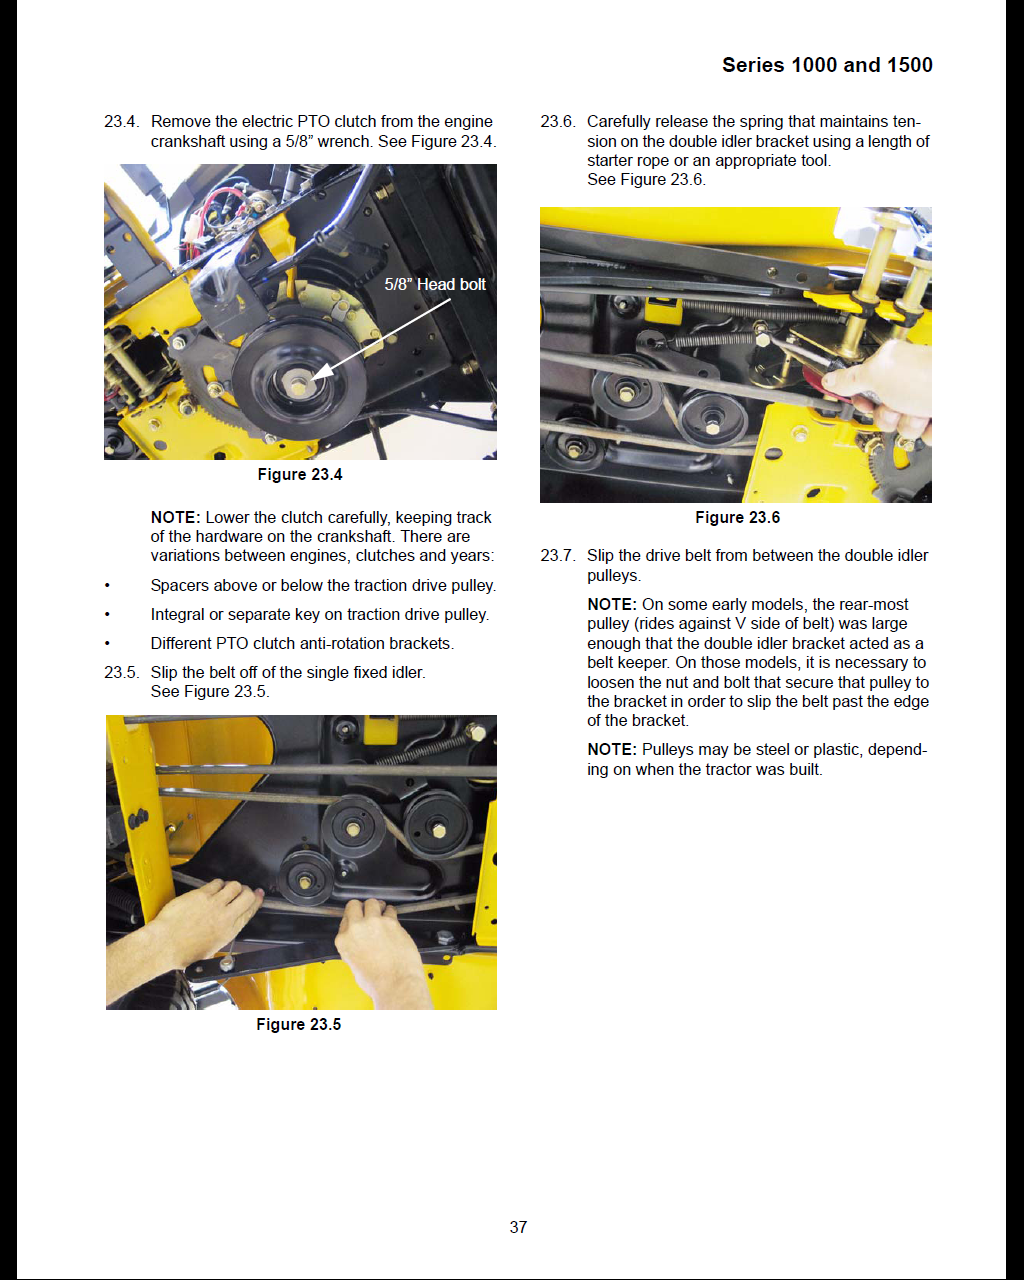 Need instructions on drive belt replace for cub cadet super